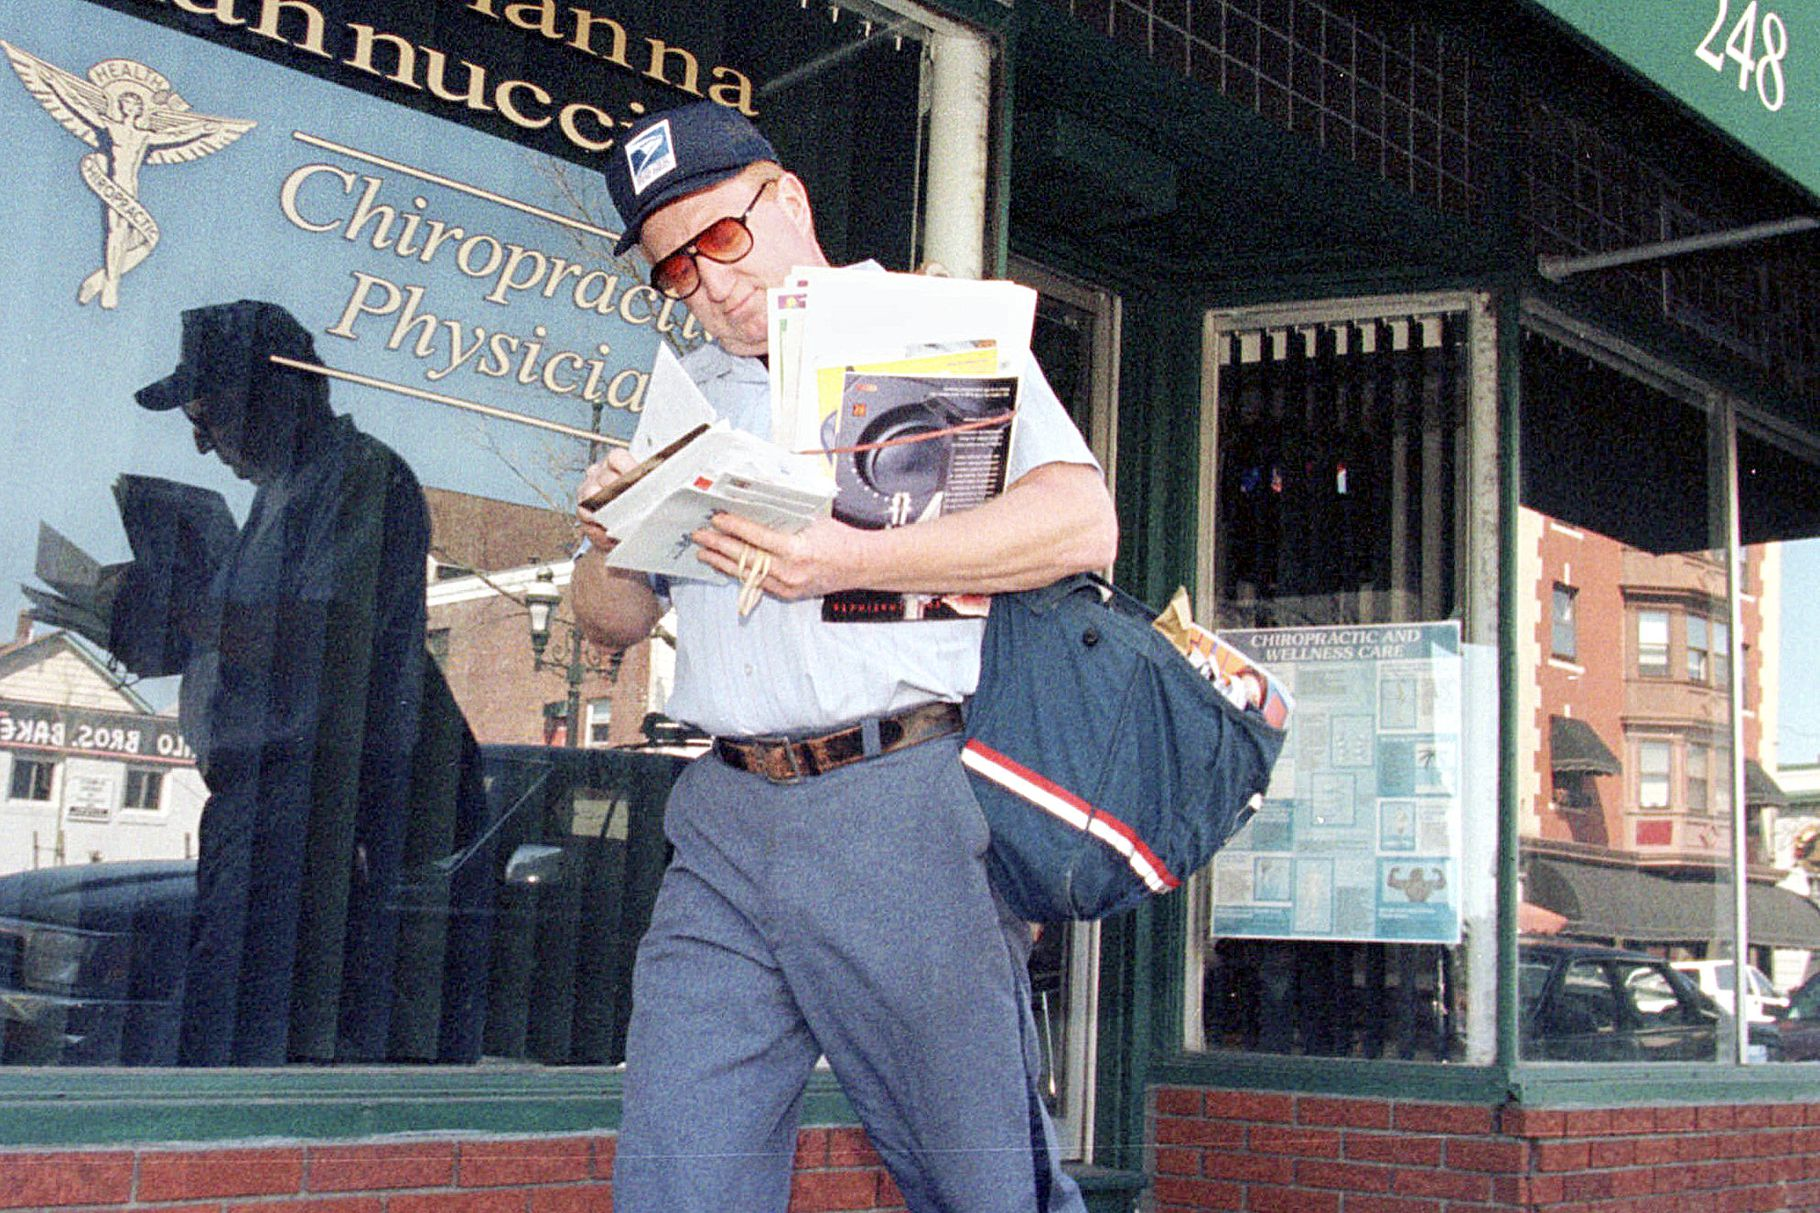 Postal Carrier walking with mail in front of a glass storefront